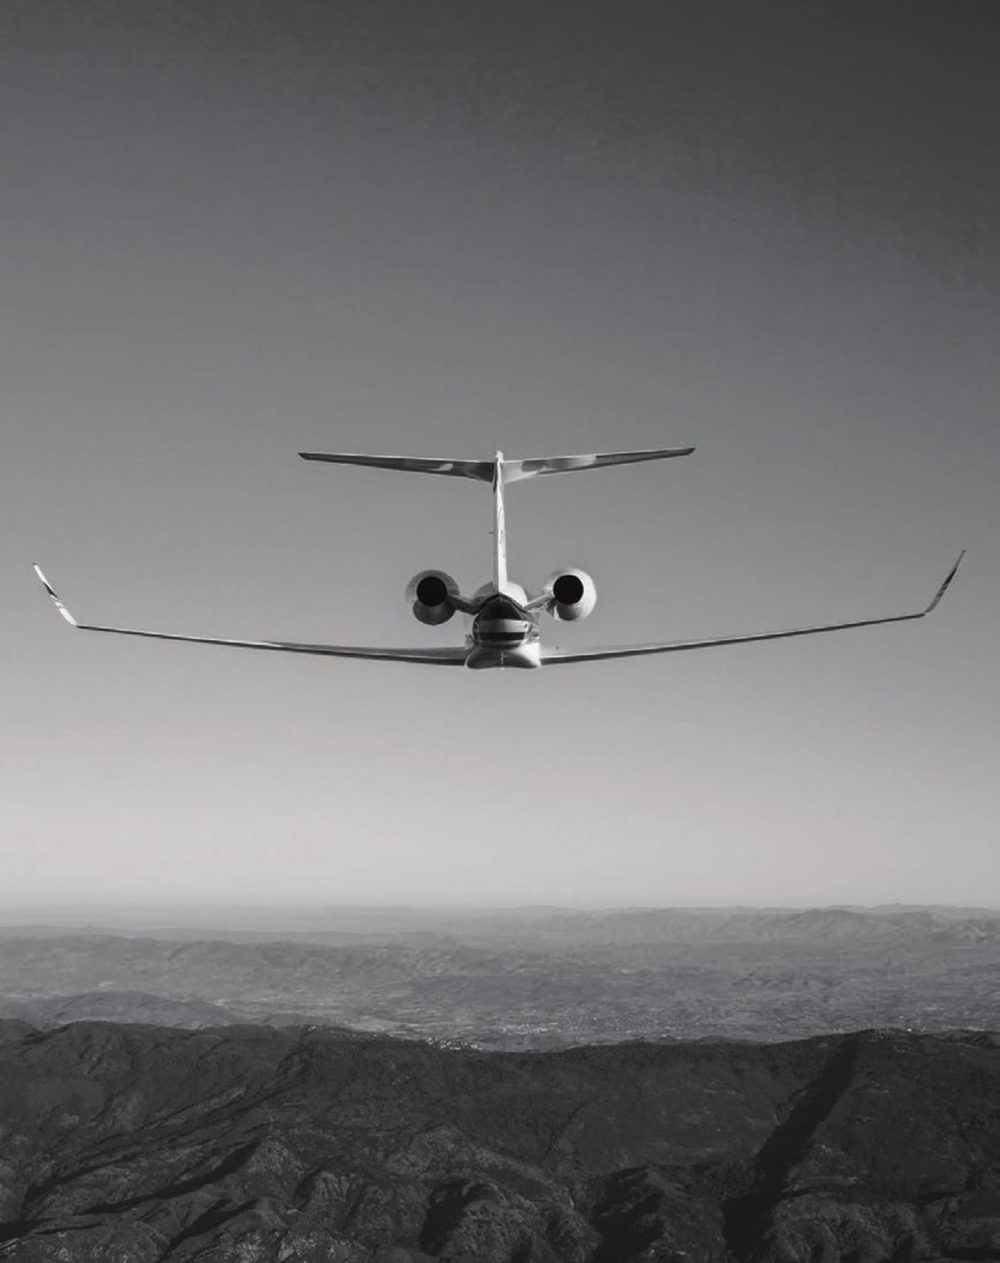 The Gulfstream G650ER sets the standard for performance in business aviation